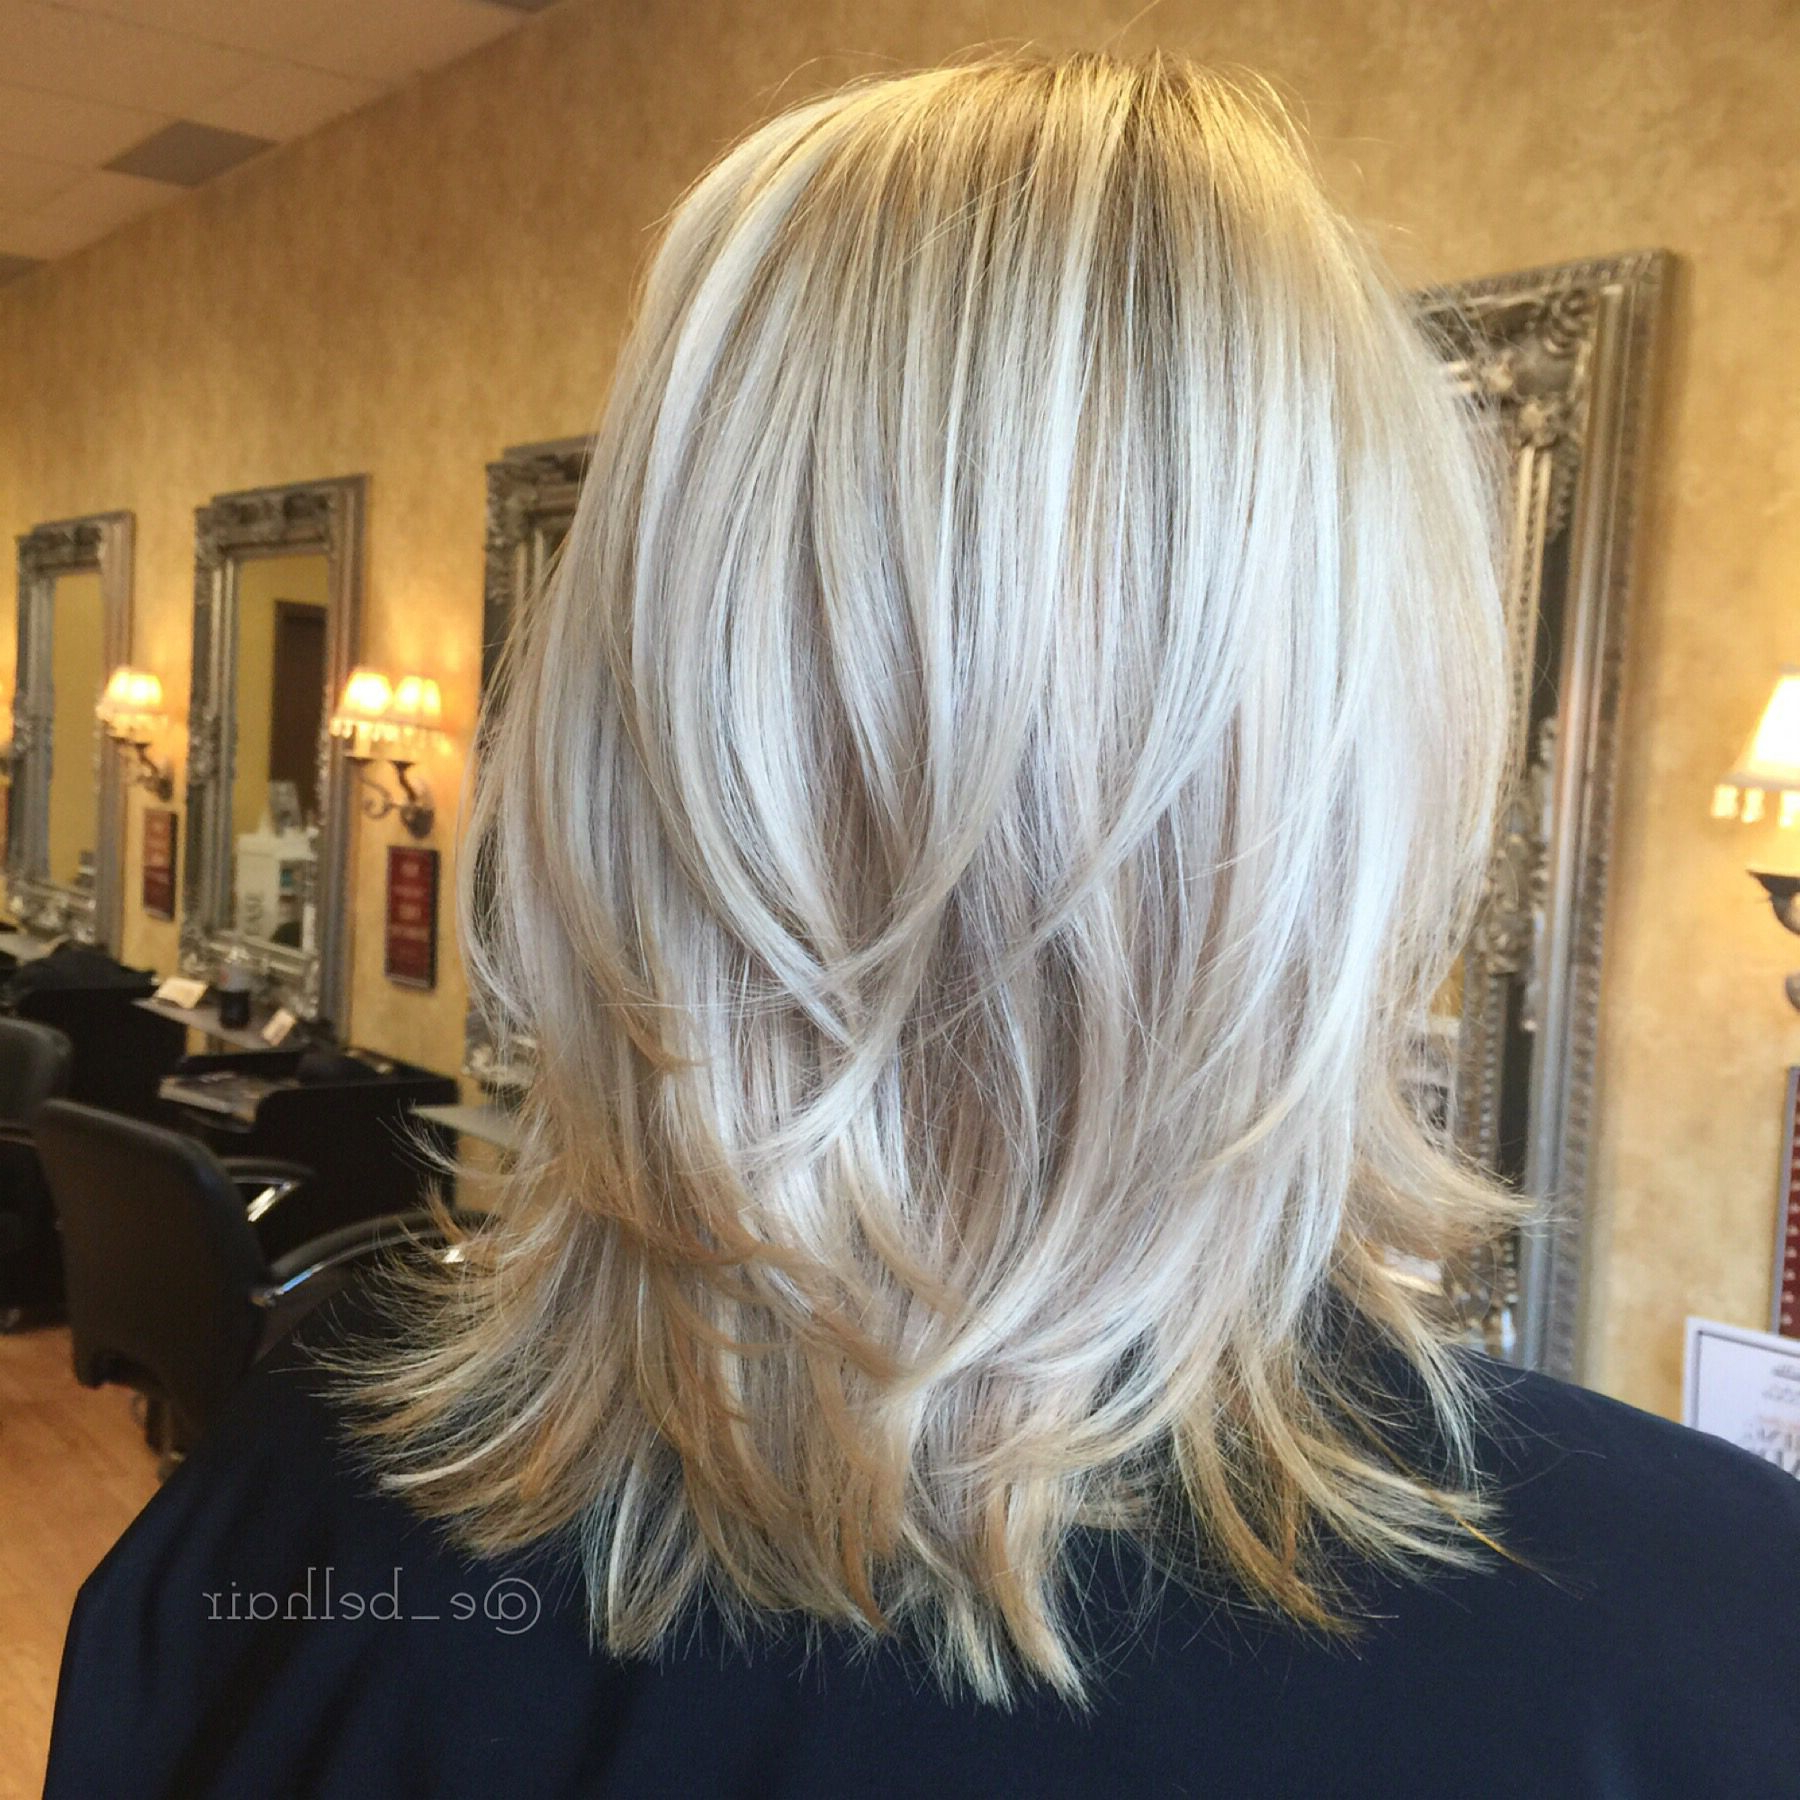 Shoulder Length Cut With Tousled Layers And Fresh Blonde Color | All In Short To Mid Length Layered Hairstyles (View 15 of 25)